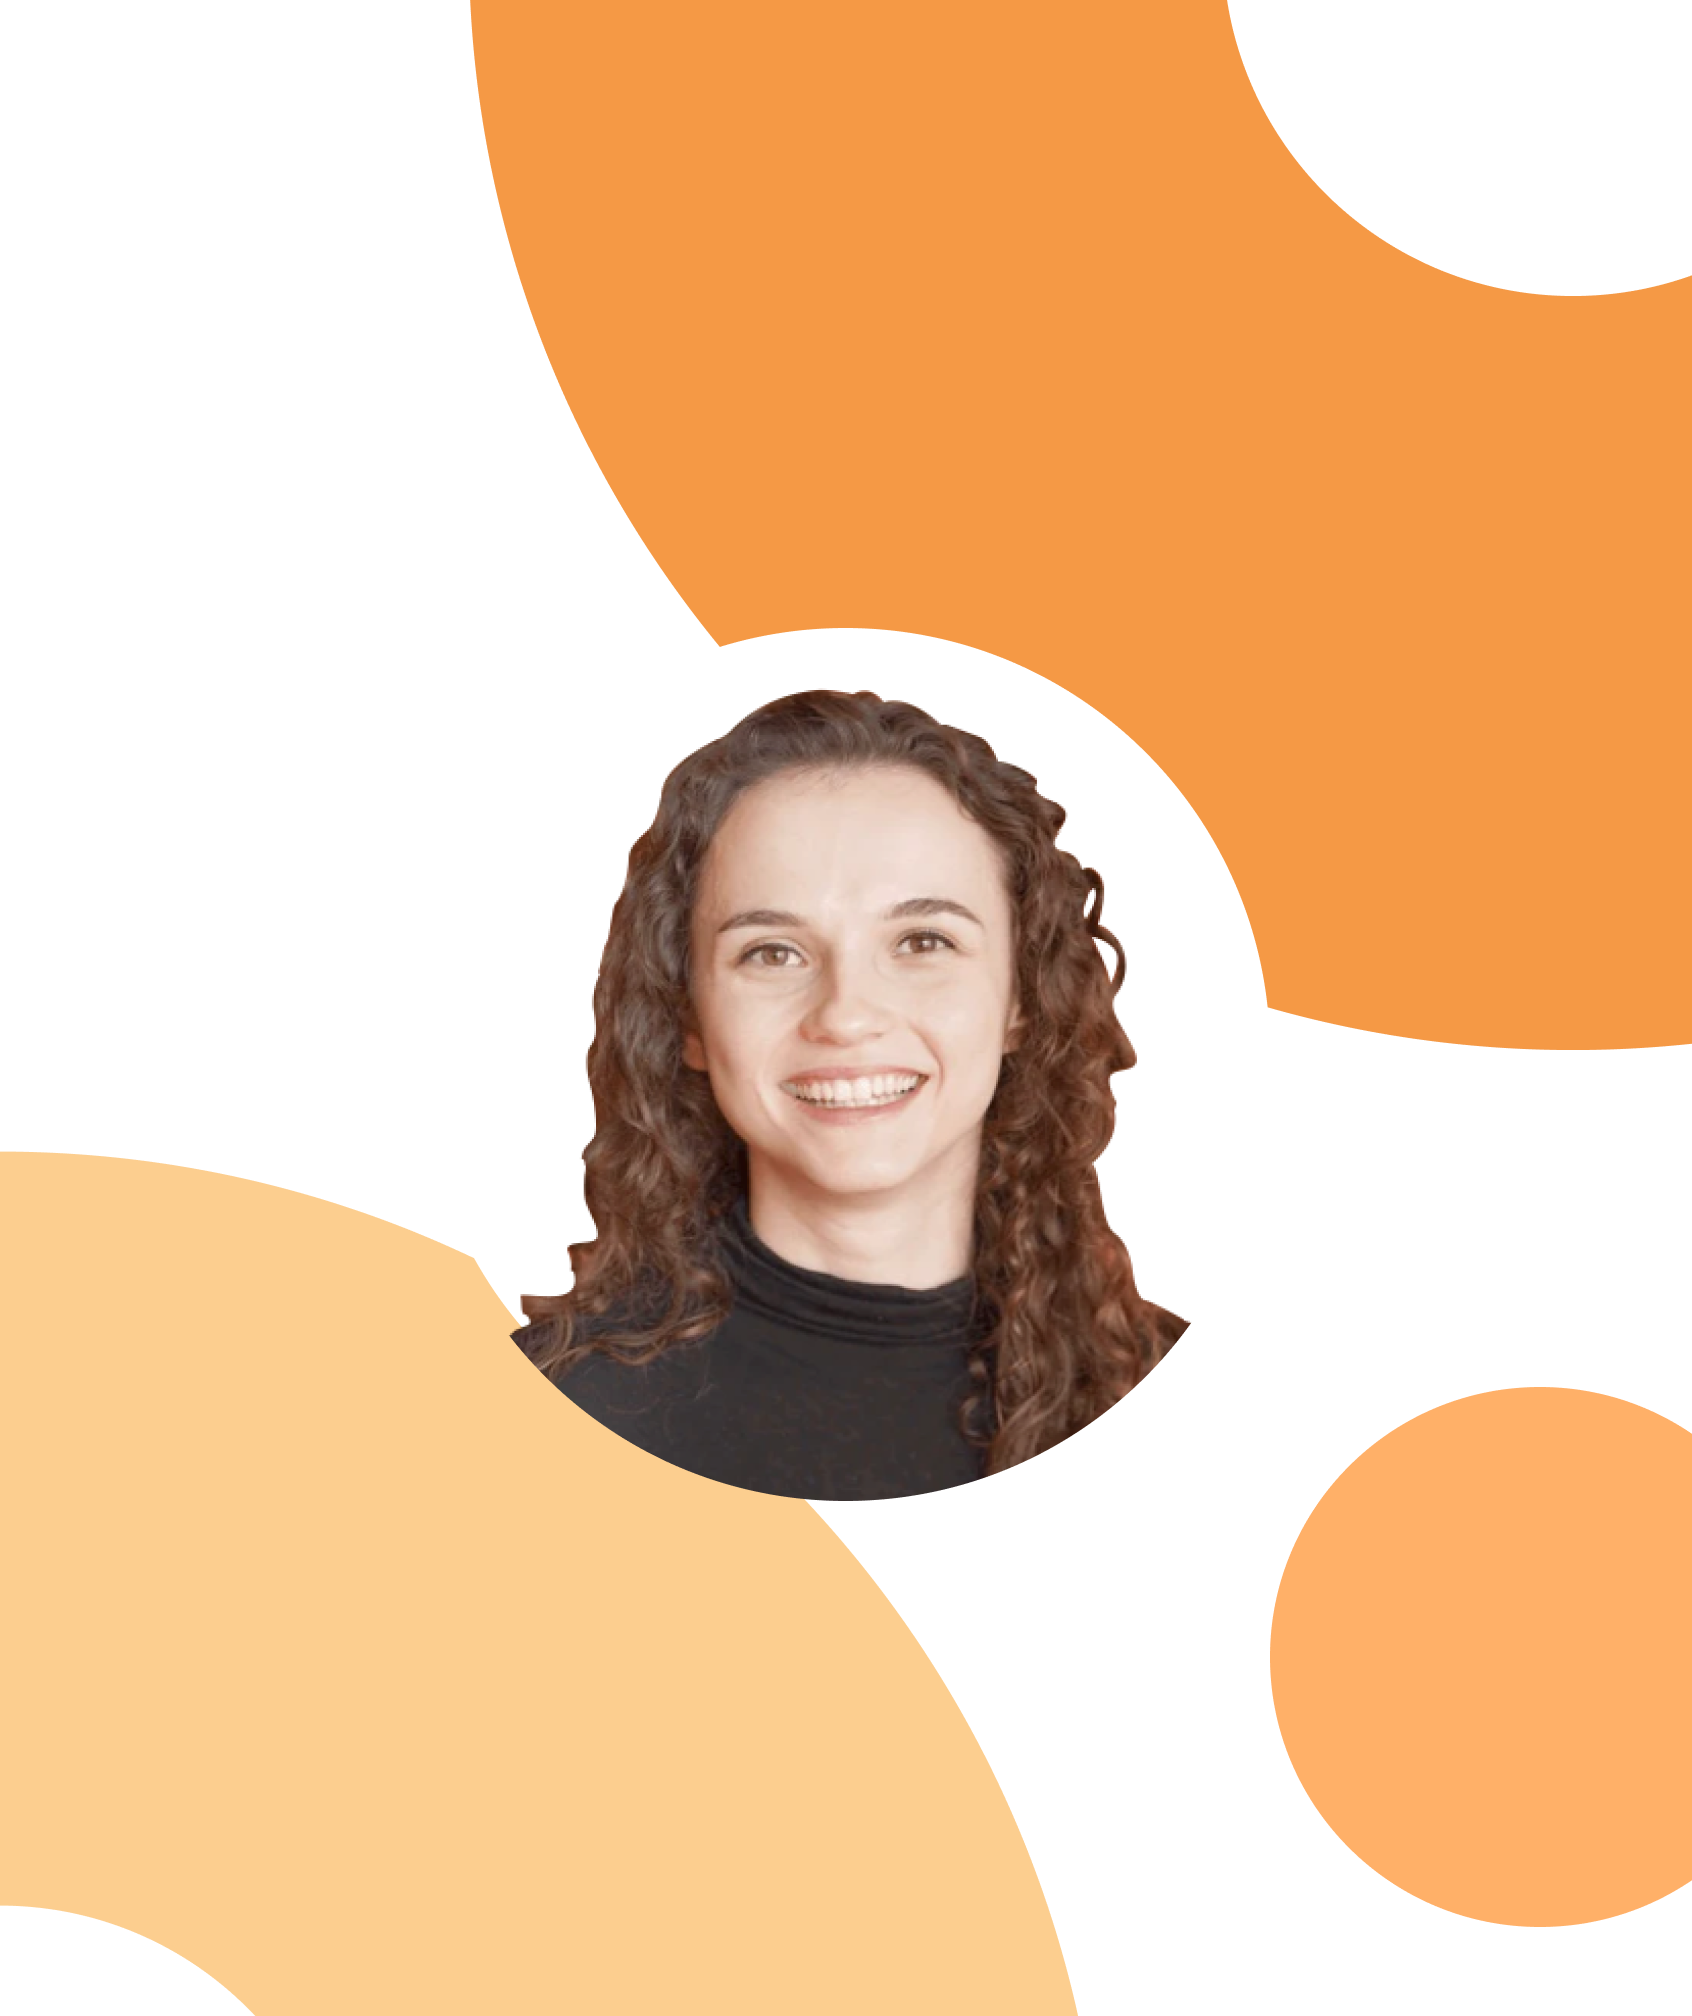 Helen Tsvirinkal on how user testing can improve every stage of your design process